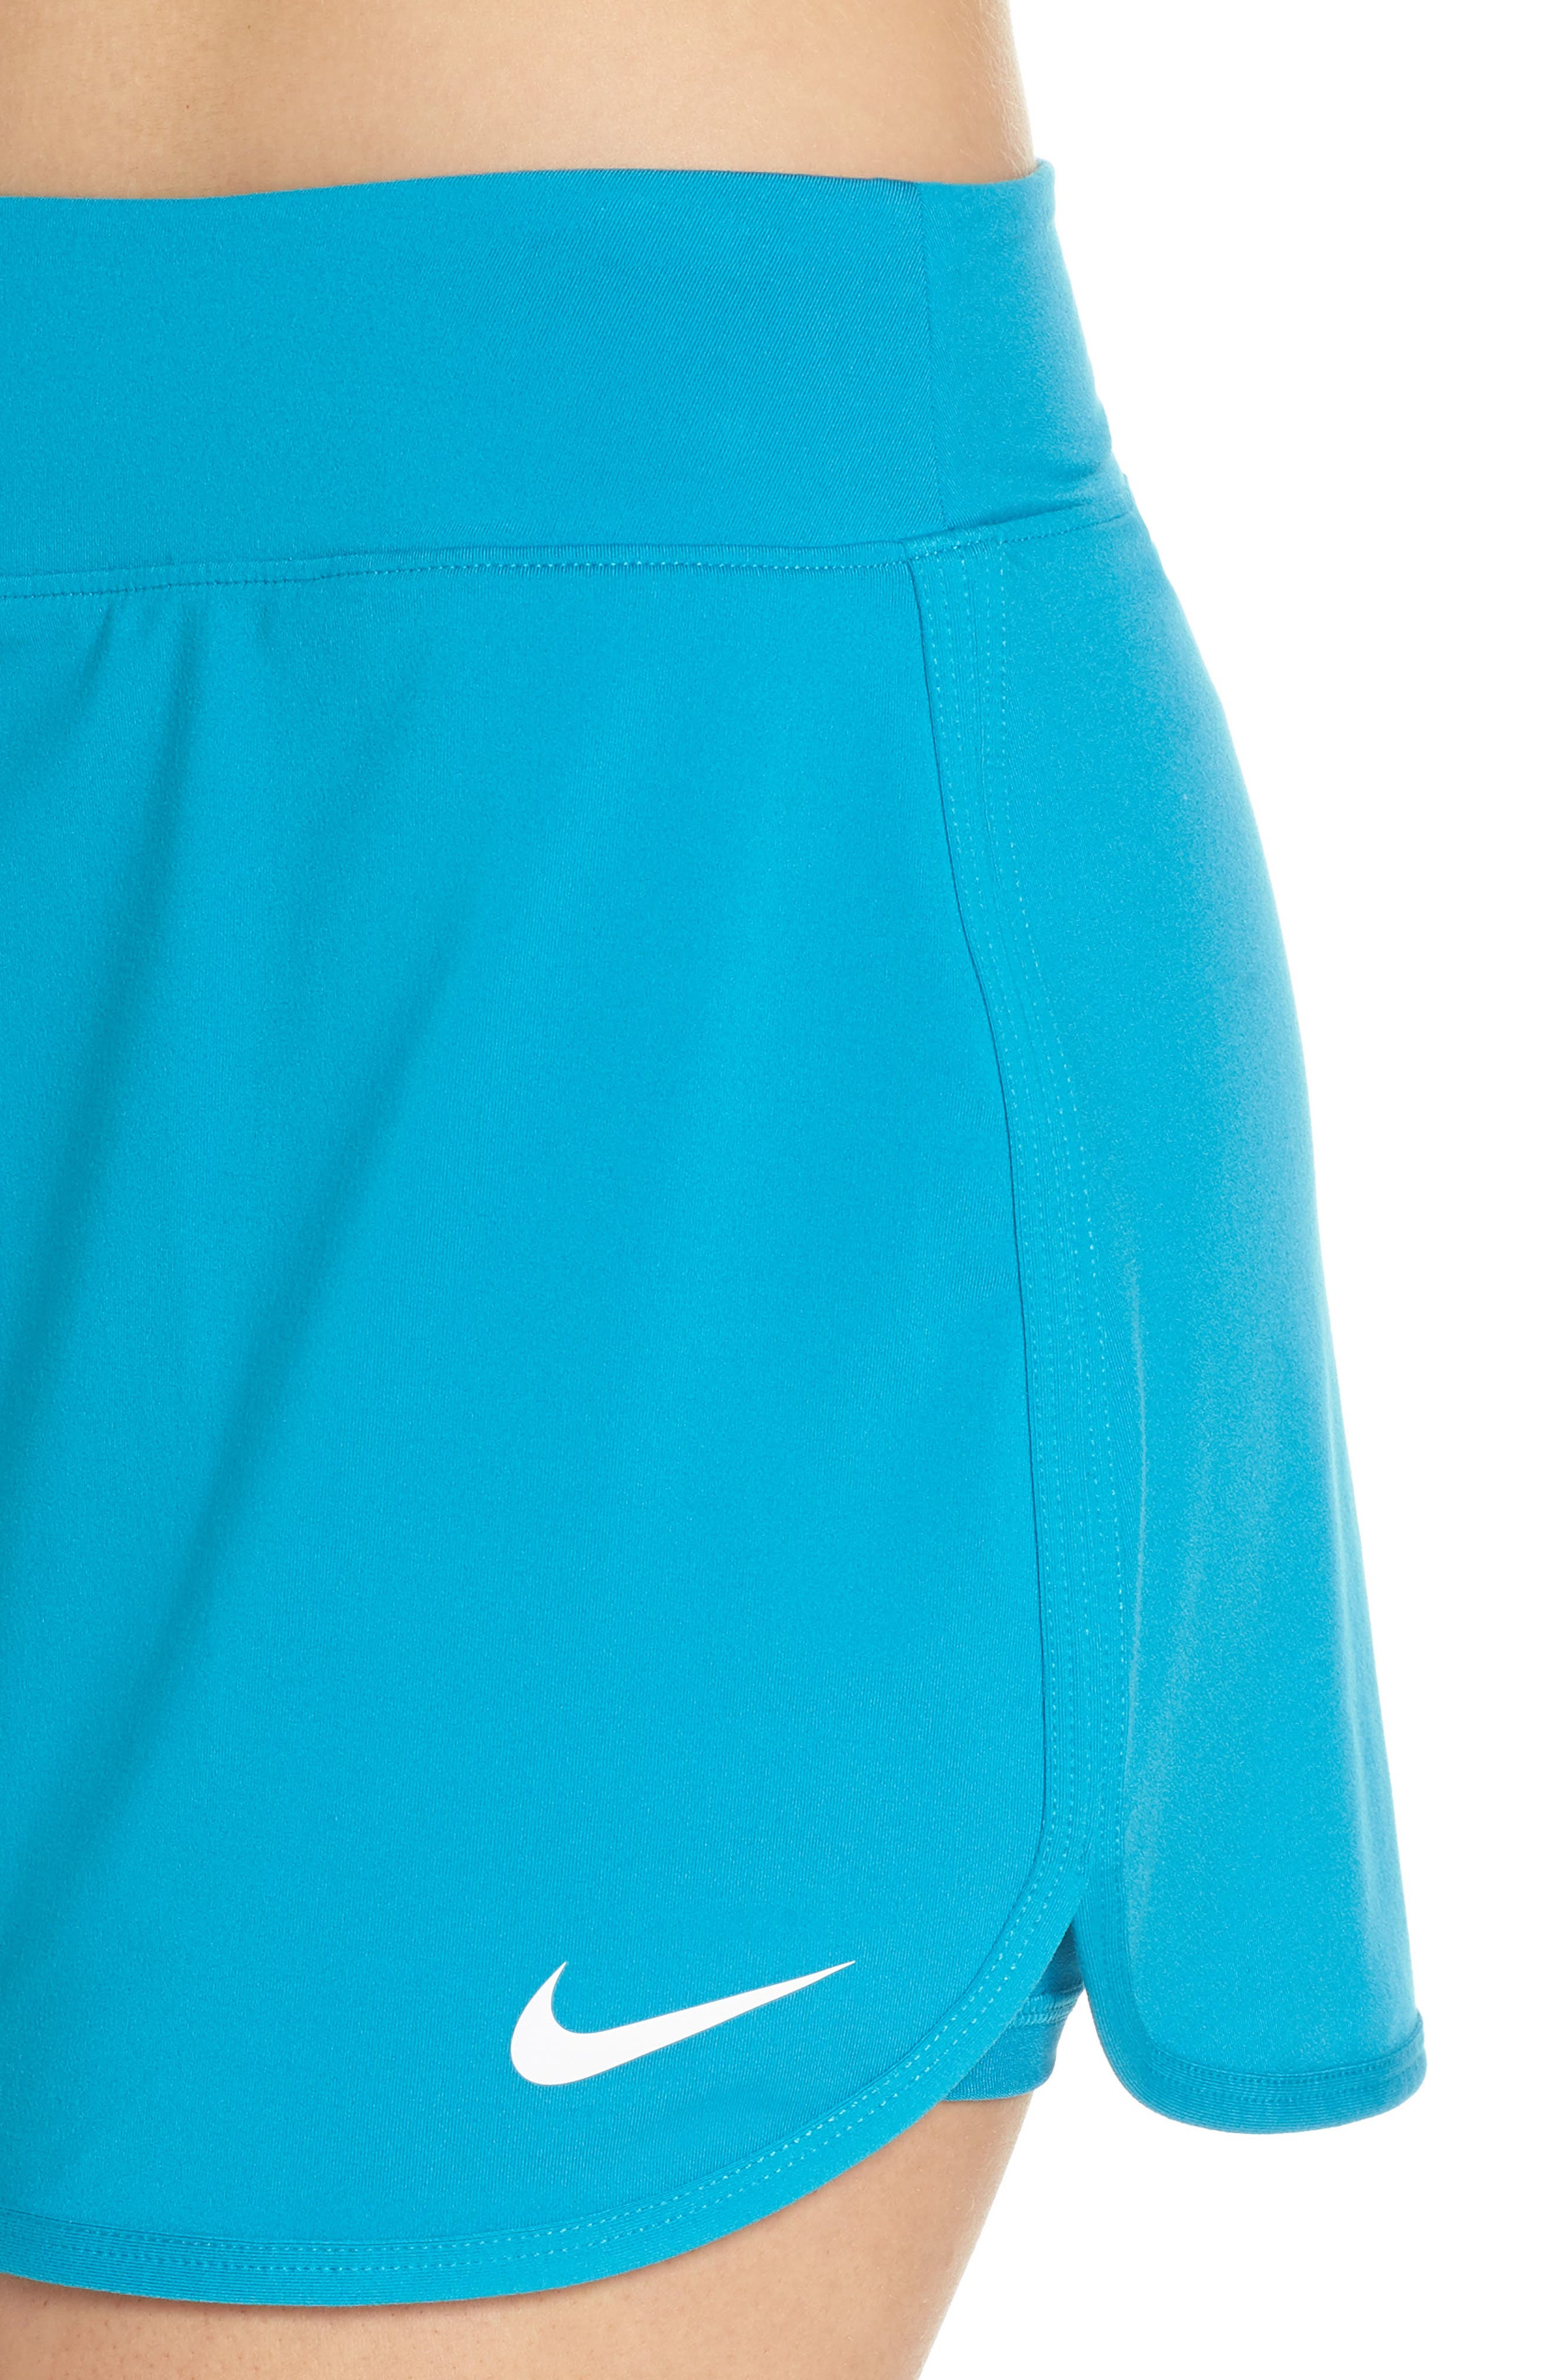 'Pure' Dri-FIT Tennis Skirt,                             Alternate thumbnail 4, color,                             Neo Turquoise/ White